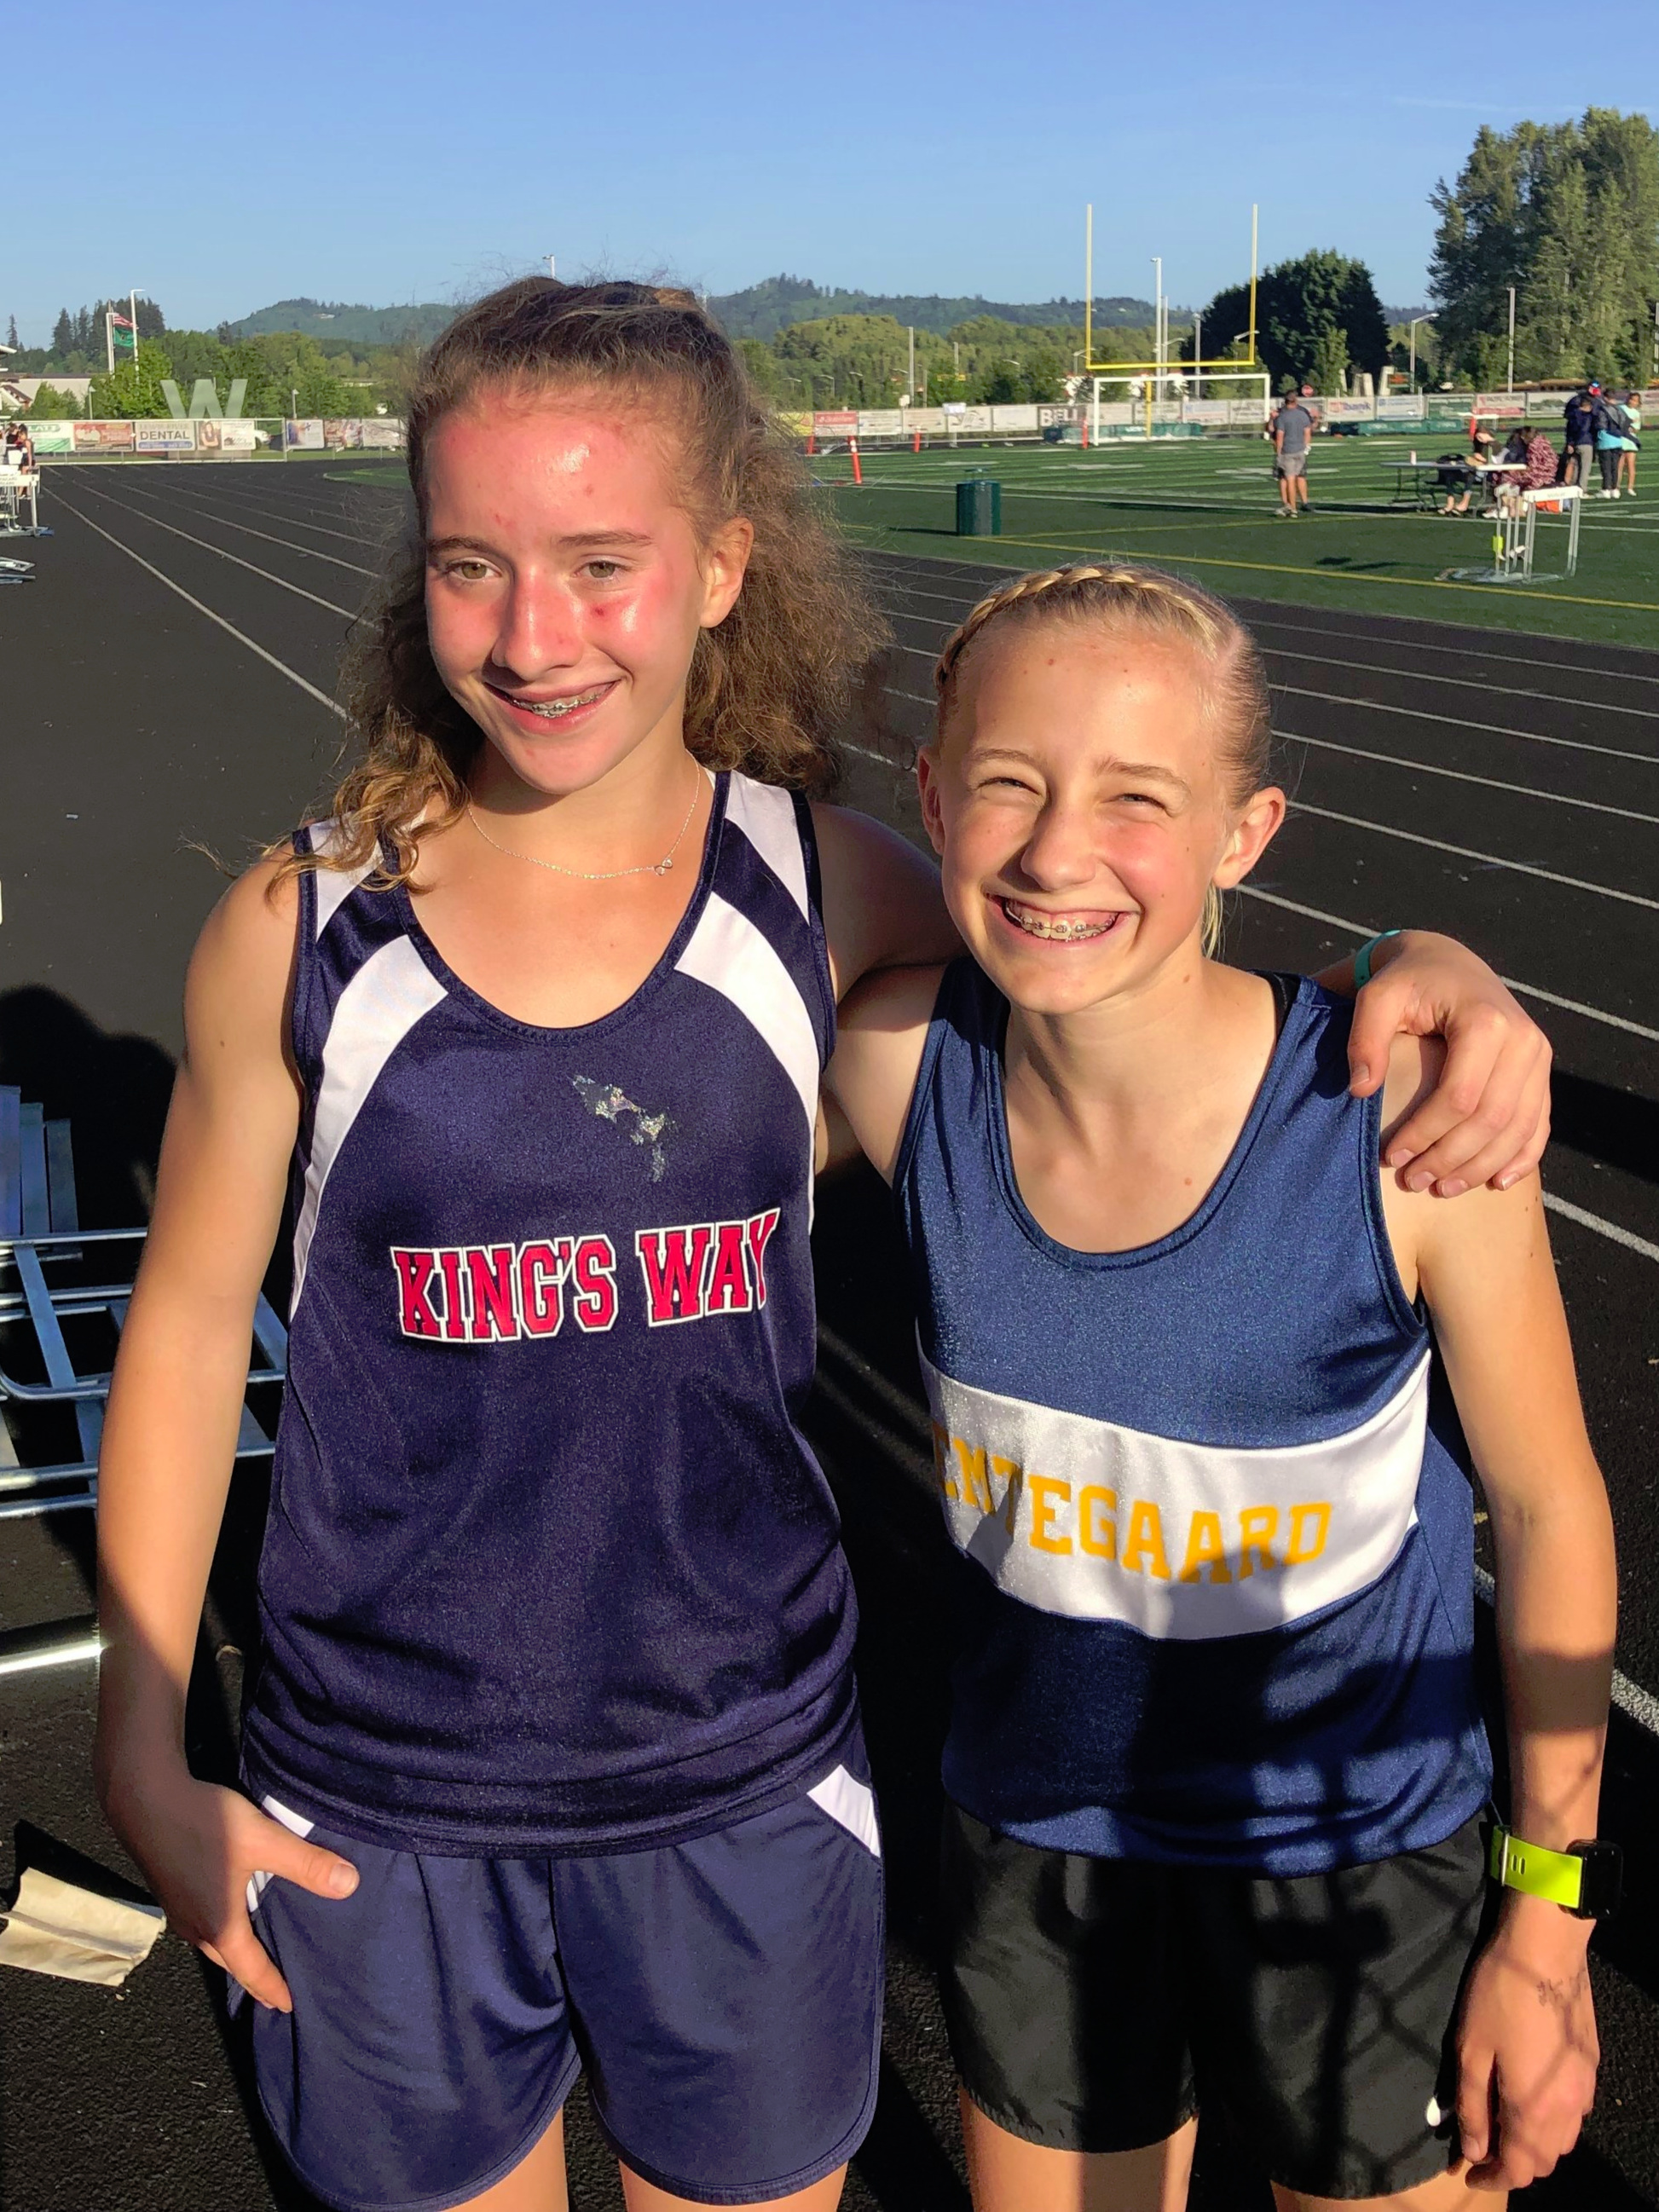 Hanna (left) and Elle (right) after an epic 800m district race.